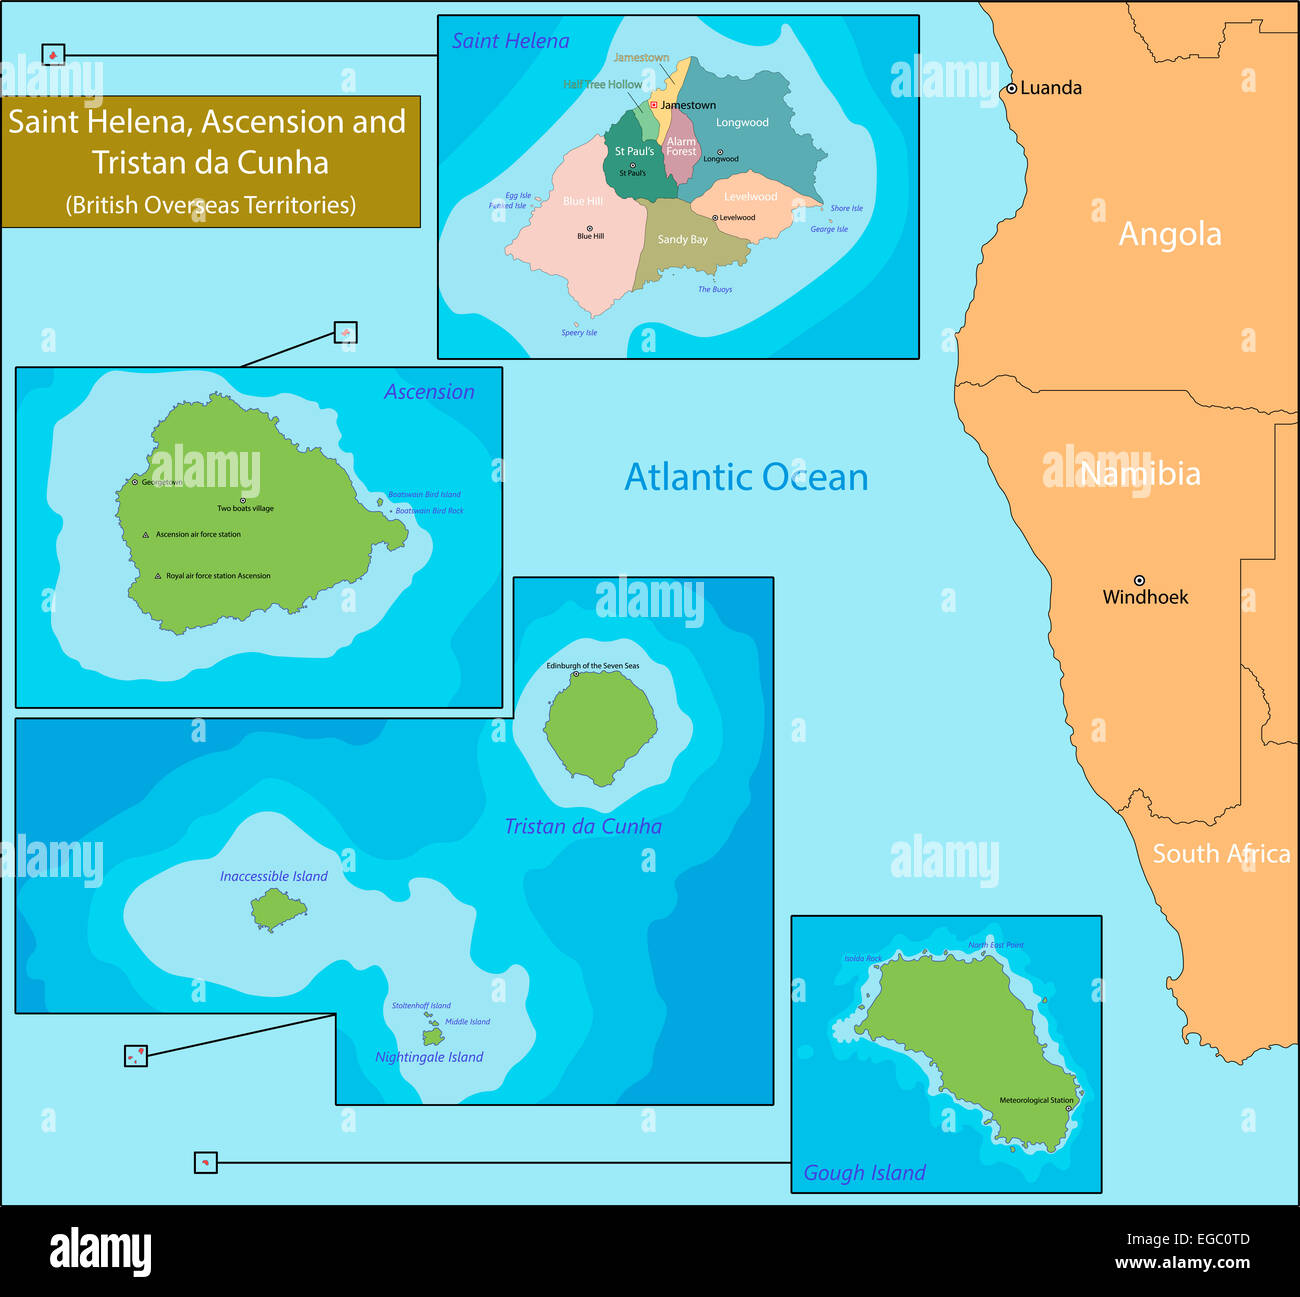 Saint Helena Ascension and Tristan da Cunha map Stock Photo